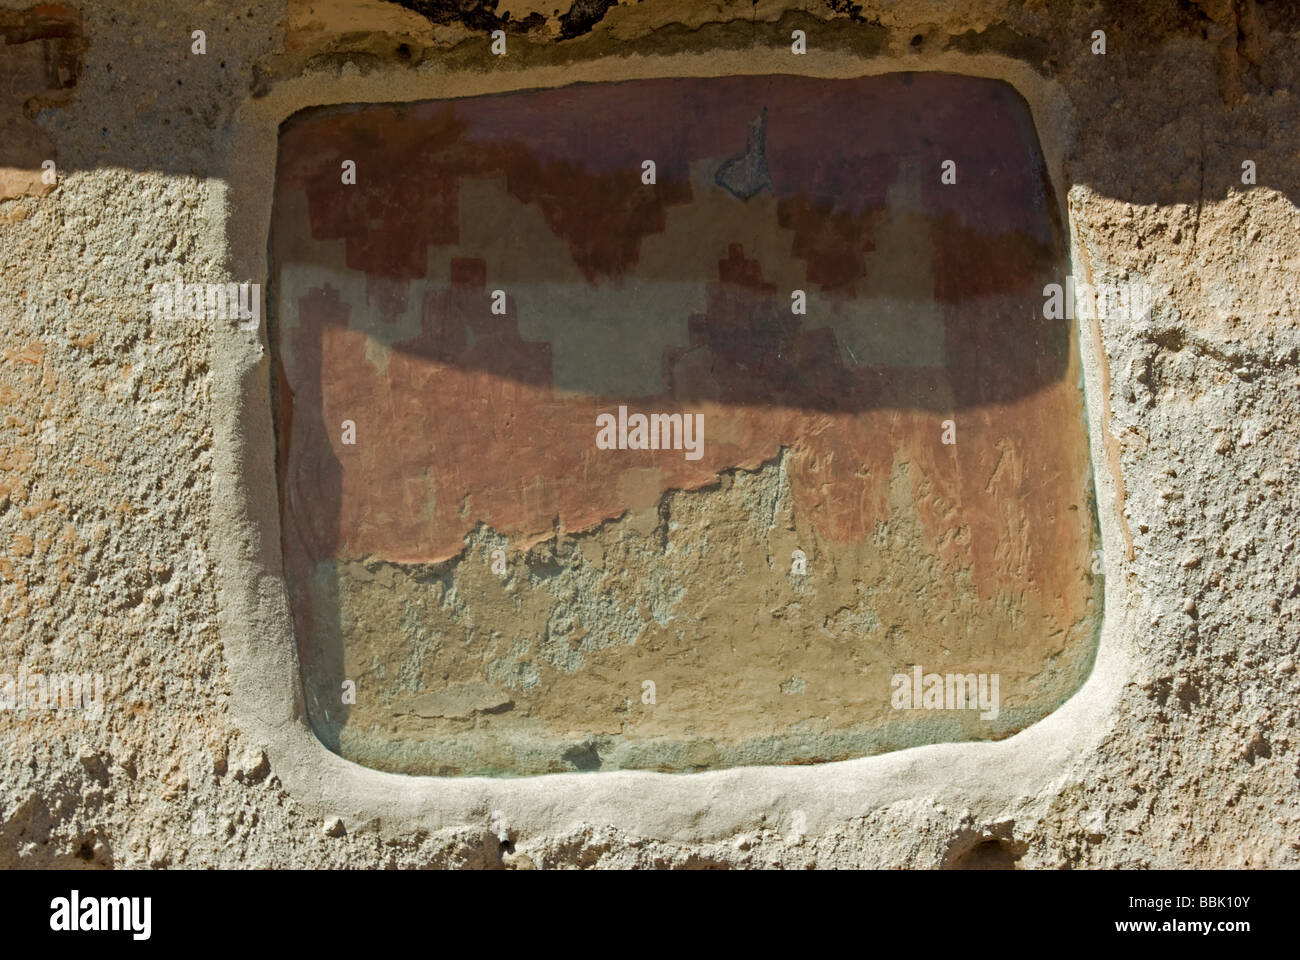 USA New Mexico Bandelier National Monument rock art painted design pictograph back wall of dwelling - Stock Image